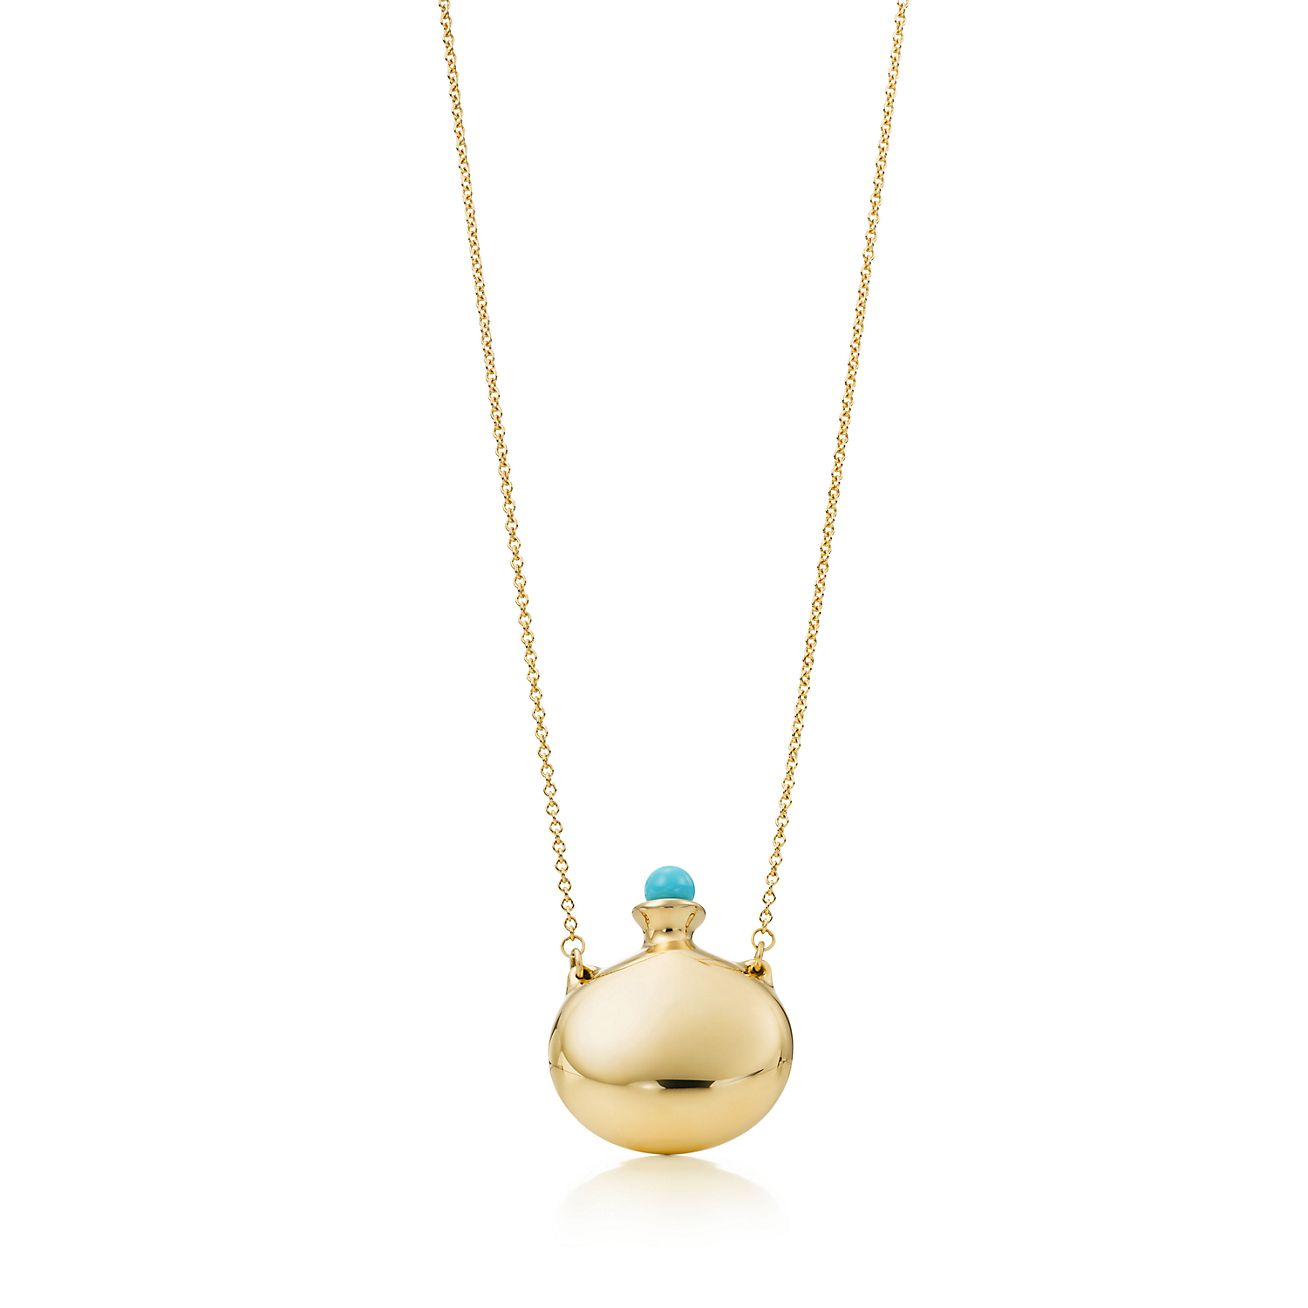 Elsa Peretti Open Heart pendant of turquoise and 18k gold Tiffany & Co.